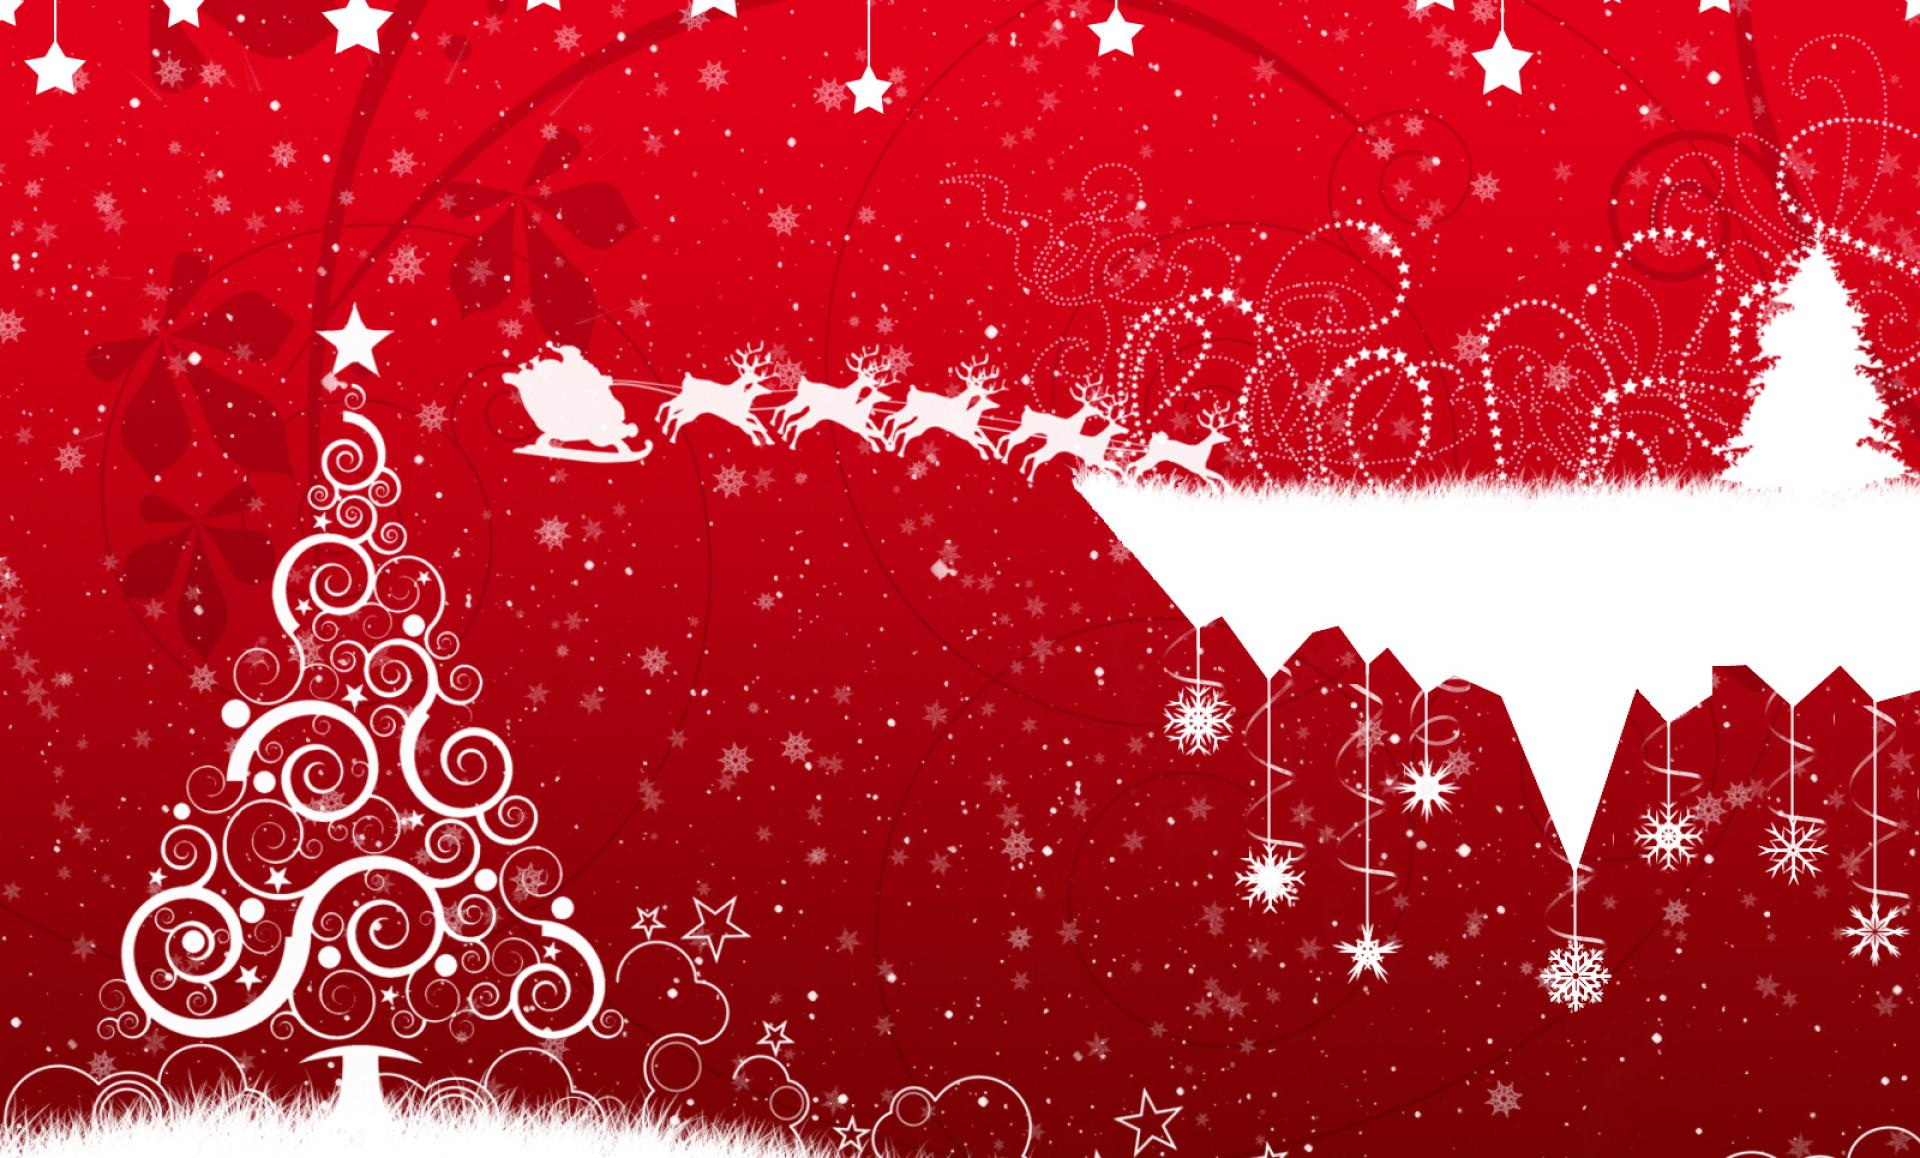 wallpaper 15 merry christmas wallpaper 16 merry christmas wallpaper 17 1920x1158